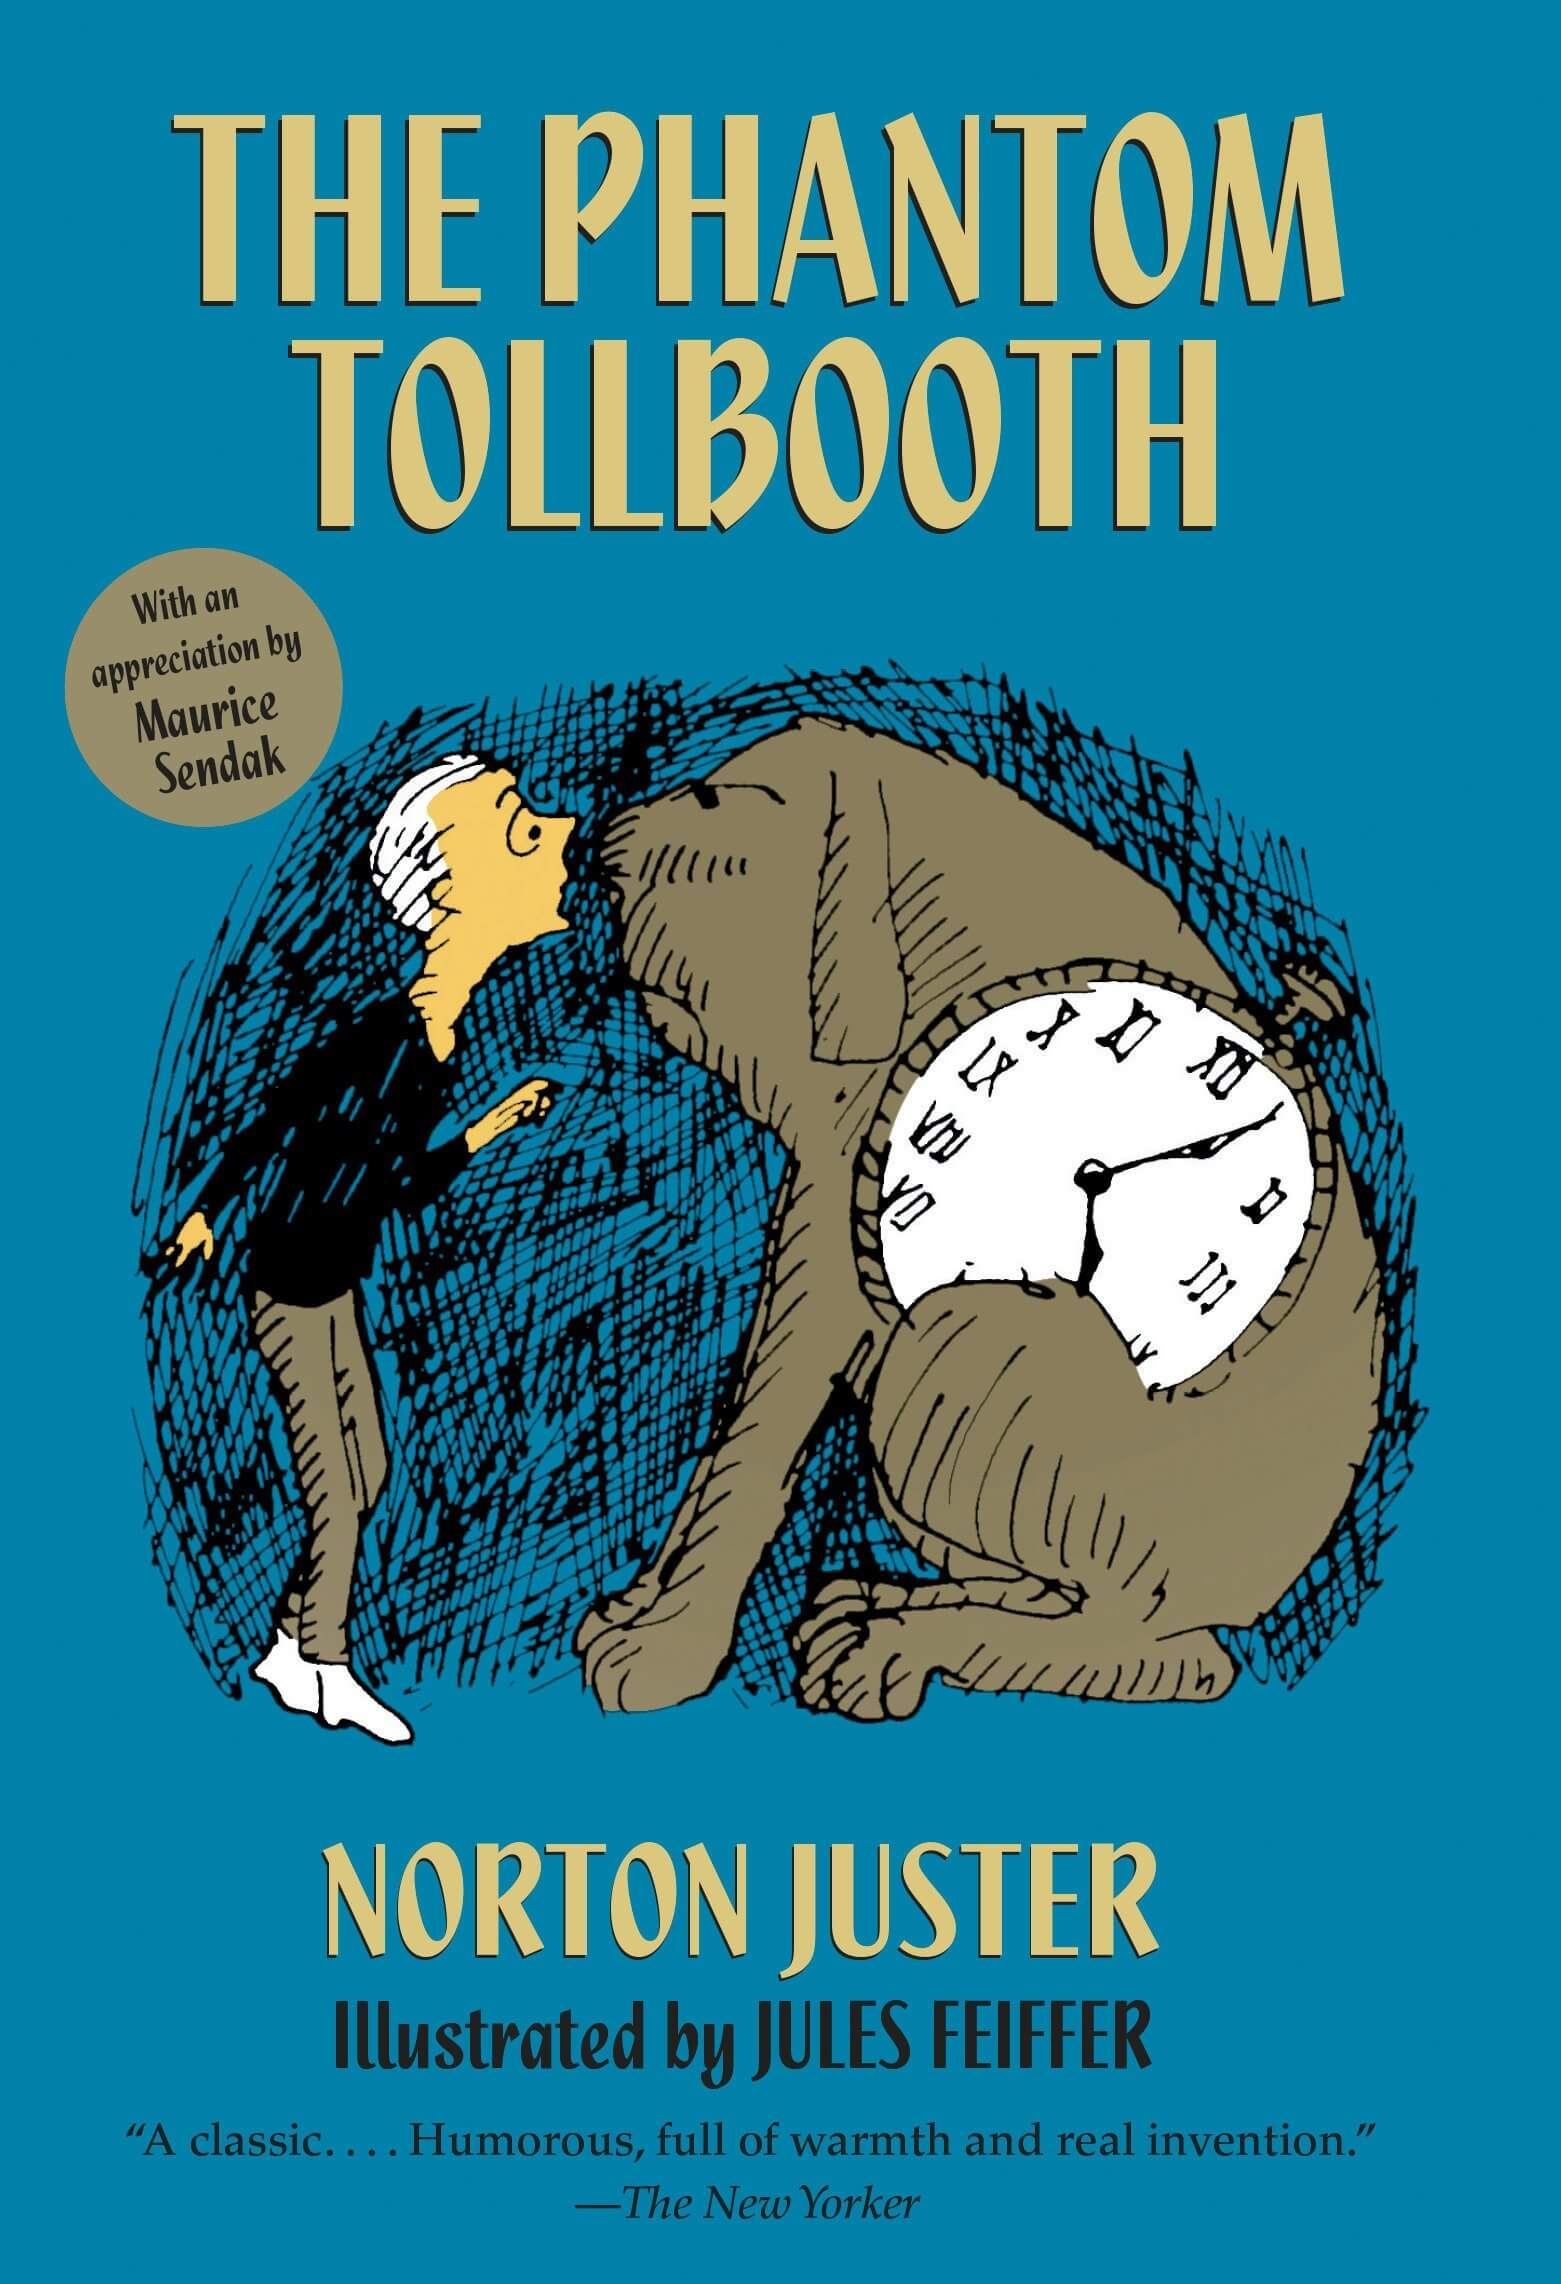 The Phantom Tollbooth Novel by Norton Juster